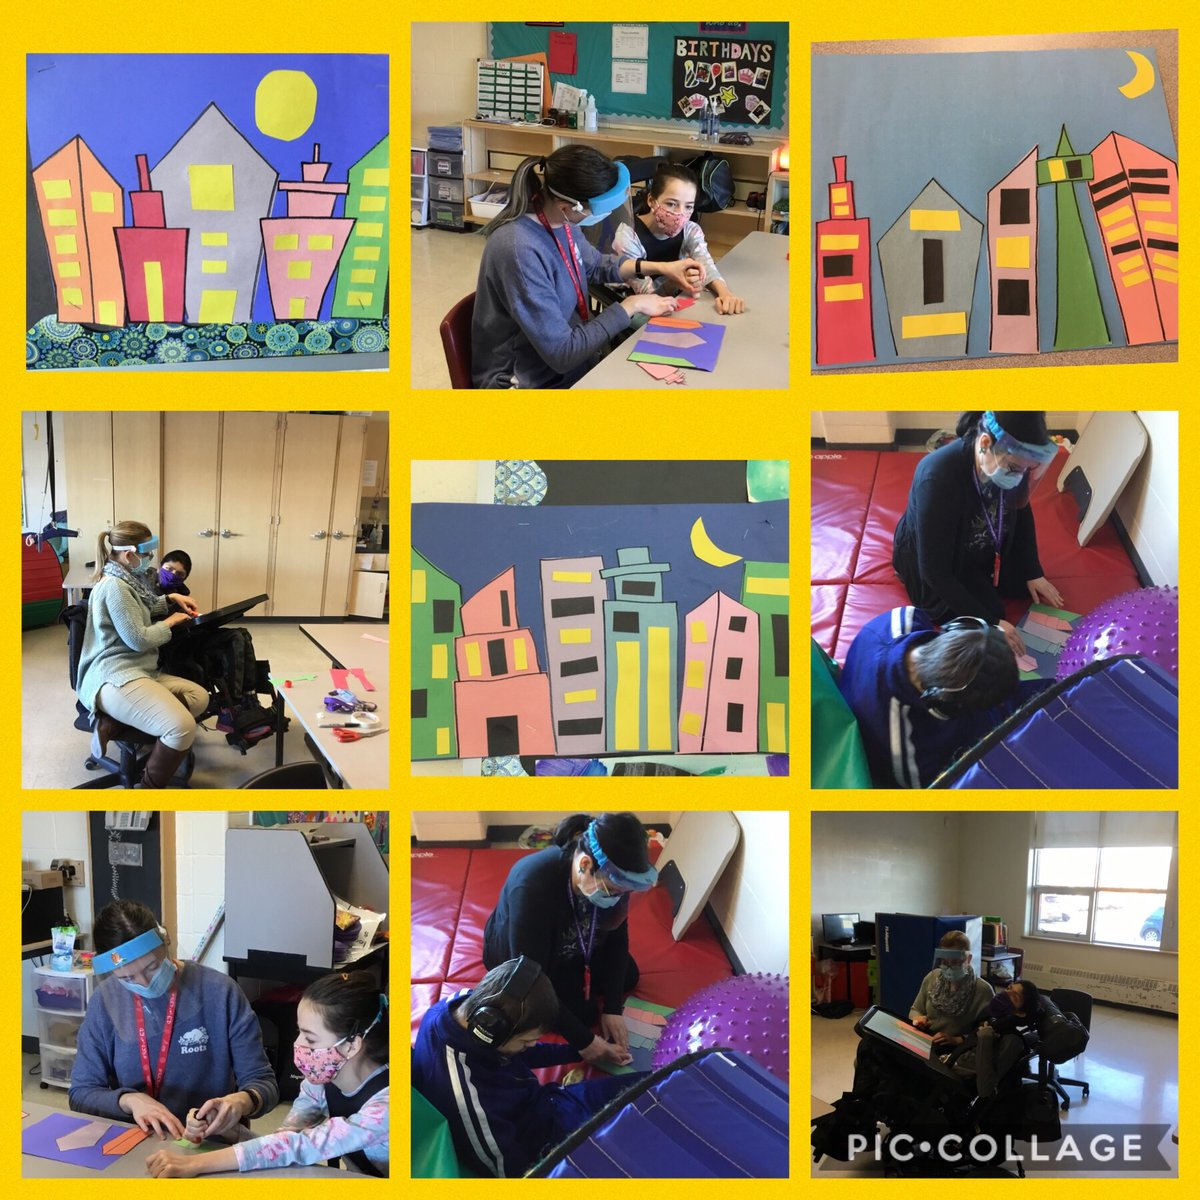 Today for Black History Month, we learned about the artist Jacob Lawrence and made city scapes. #BHM #artshare @PeelSchools @HMBSSBlizzards